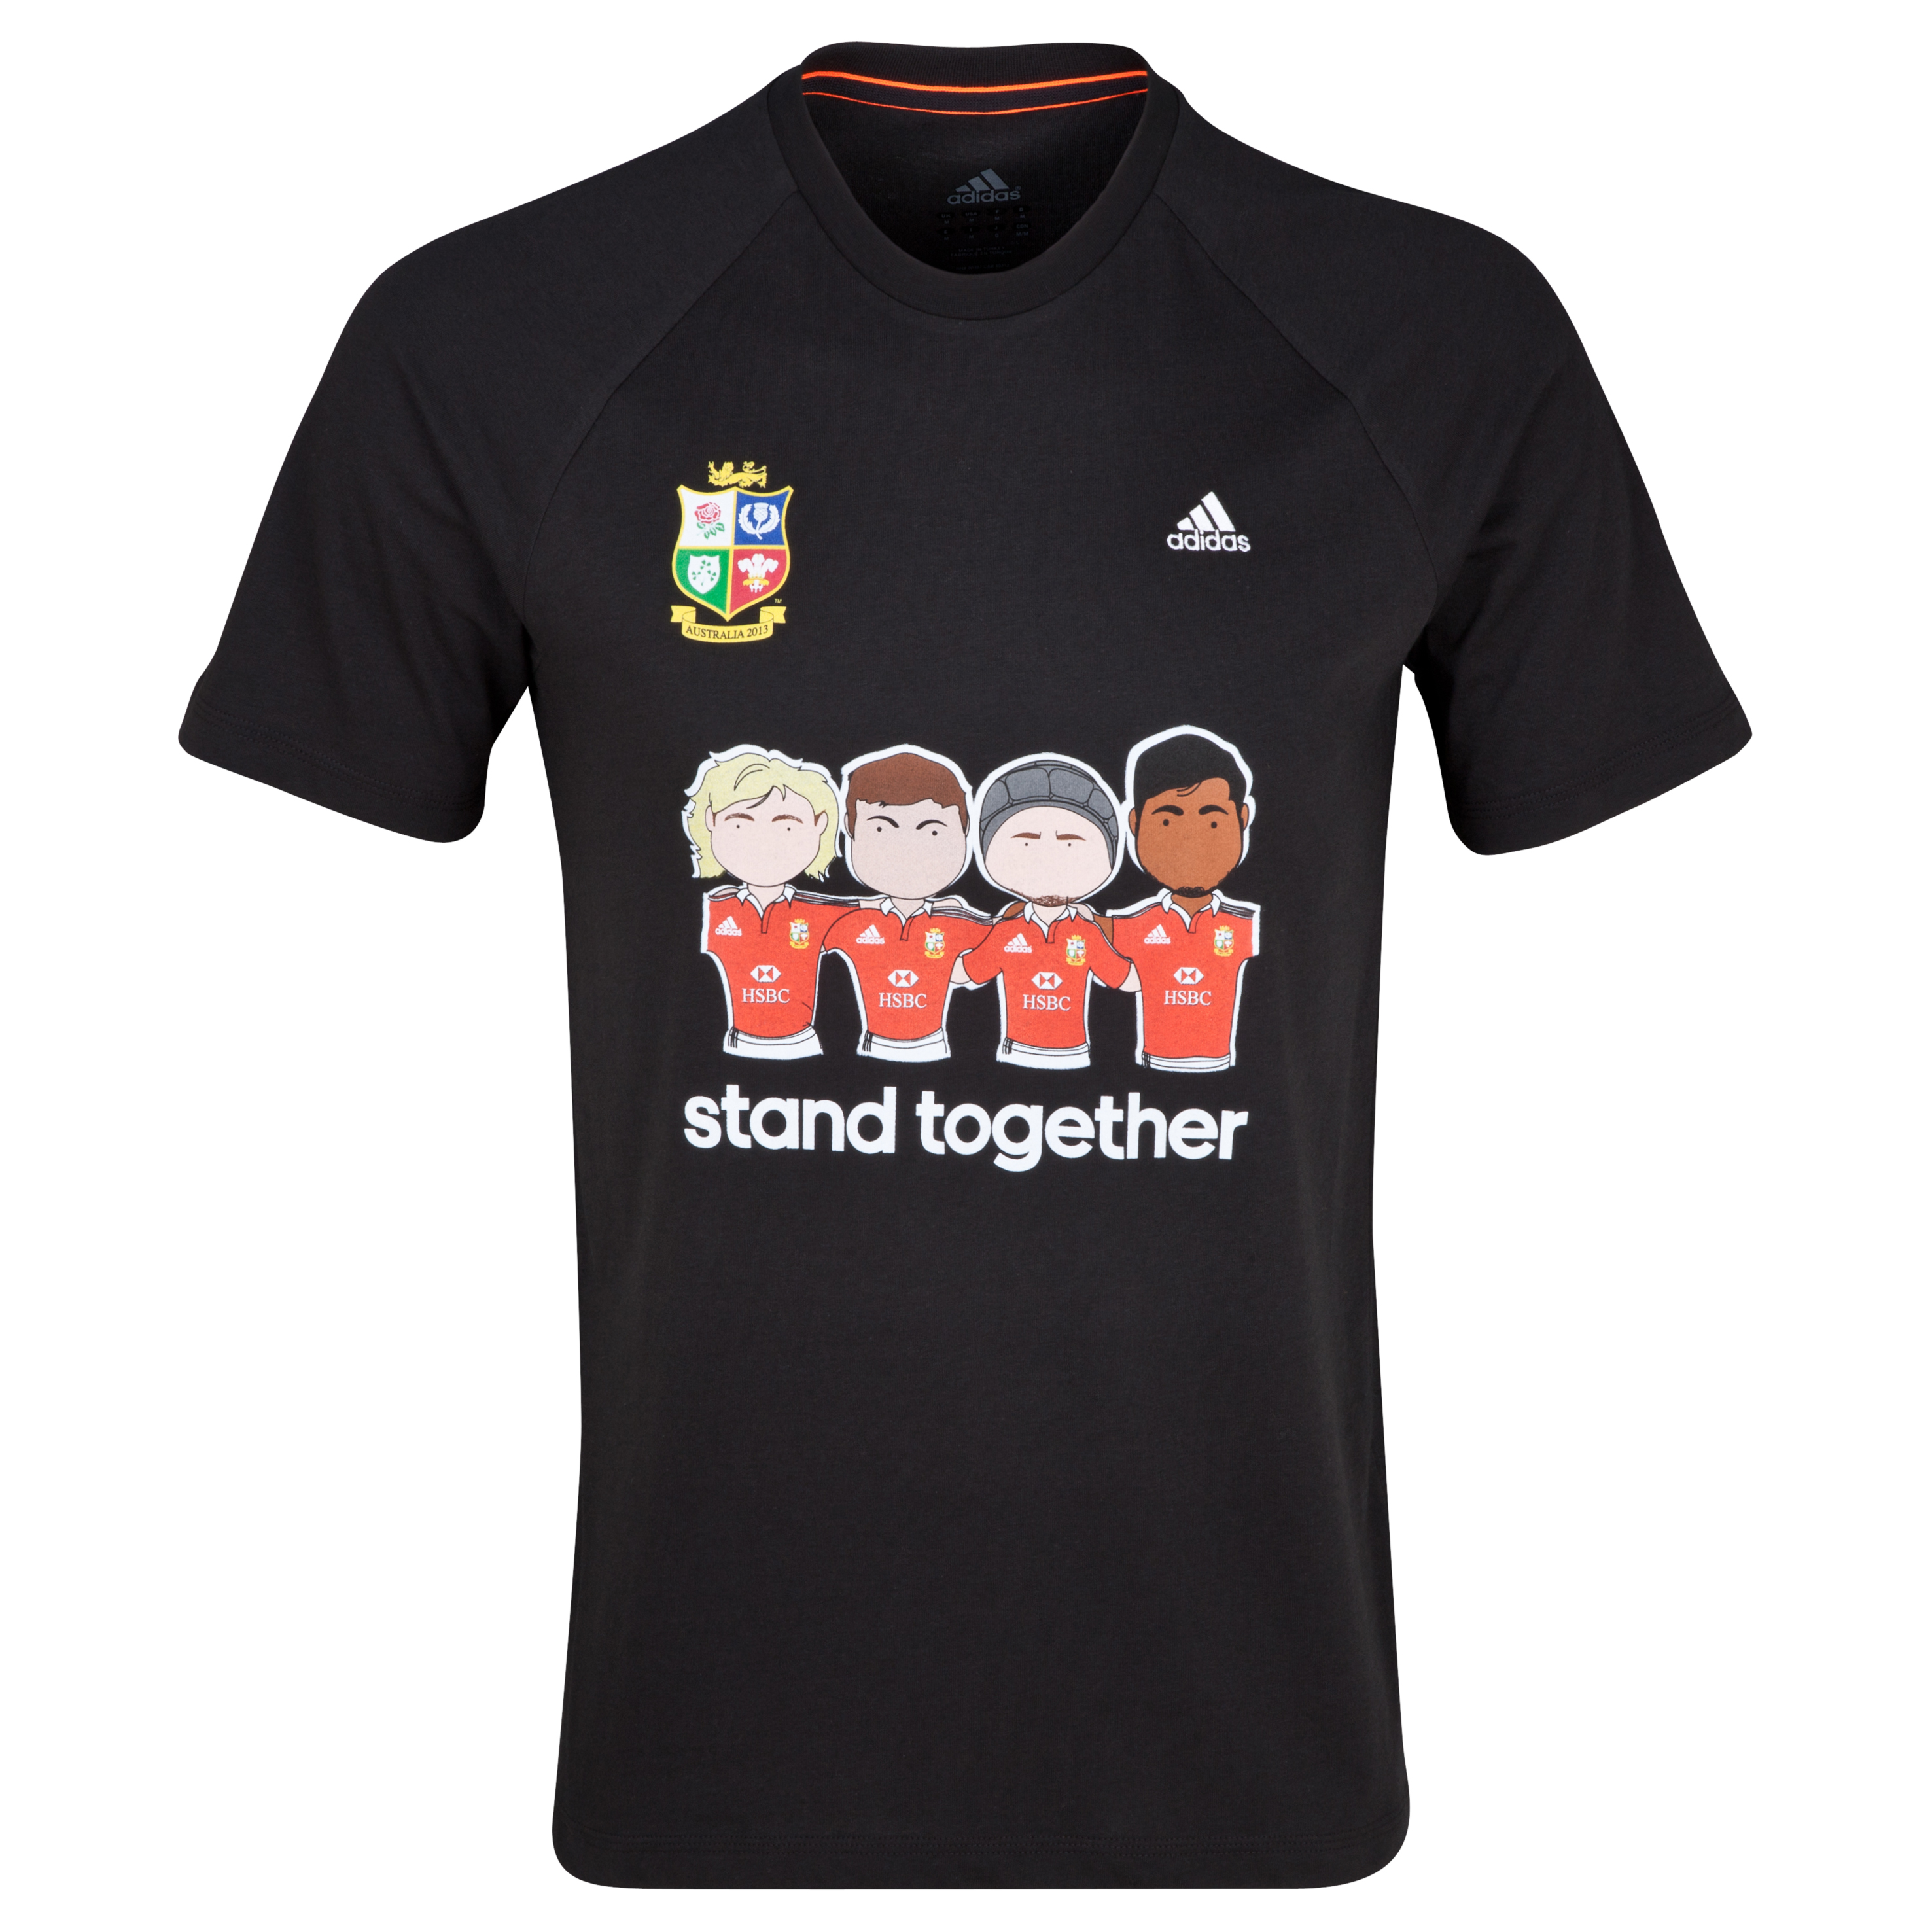 British & Irish Lions adidas Campaign T-Shirt Black